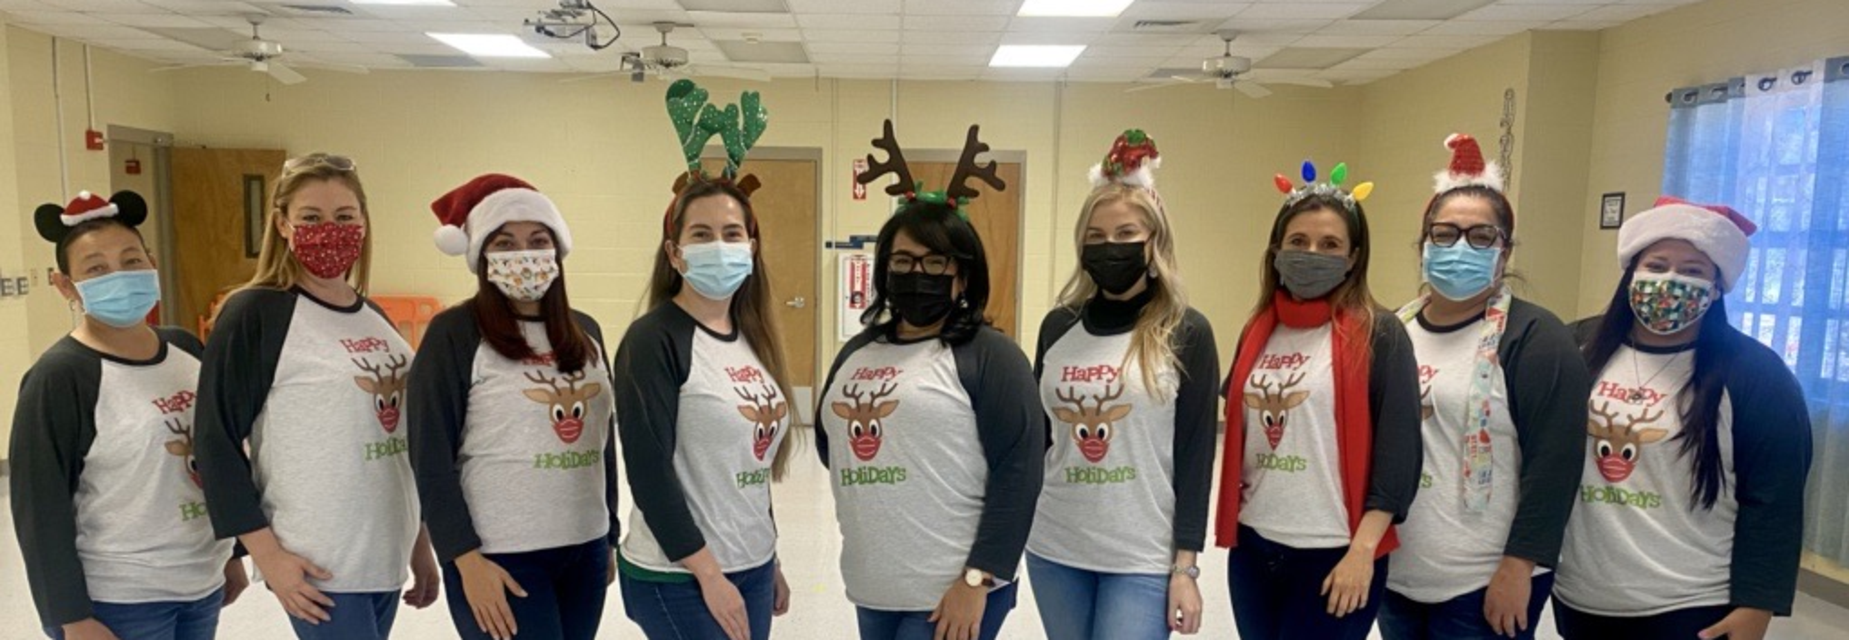 staff with Christmas shirts